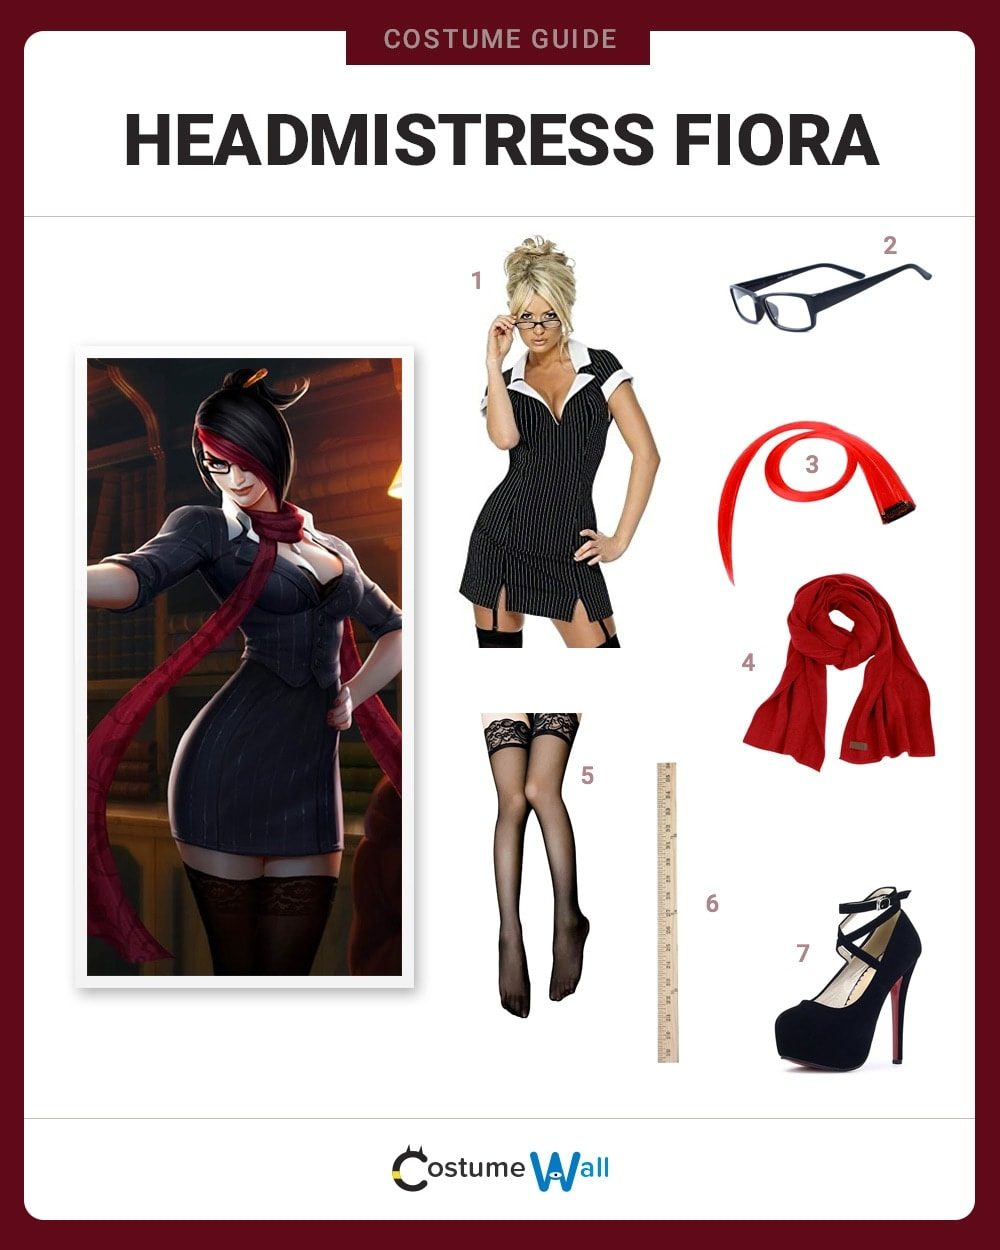 Headmistress Fiora Costume Guide